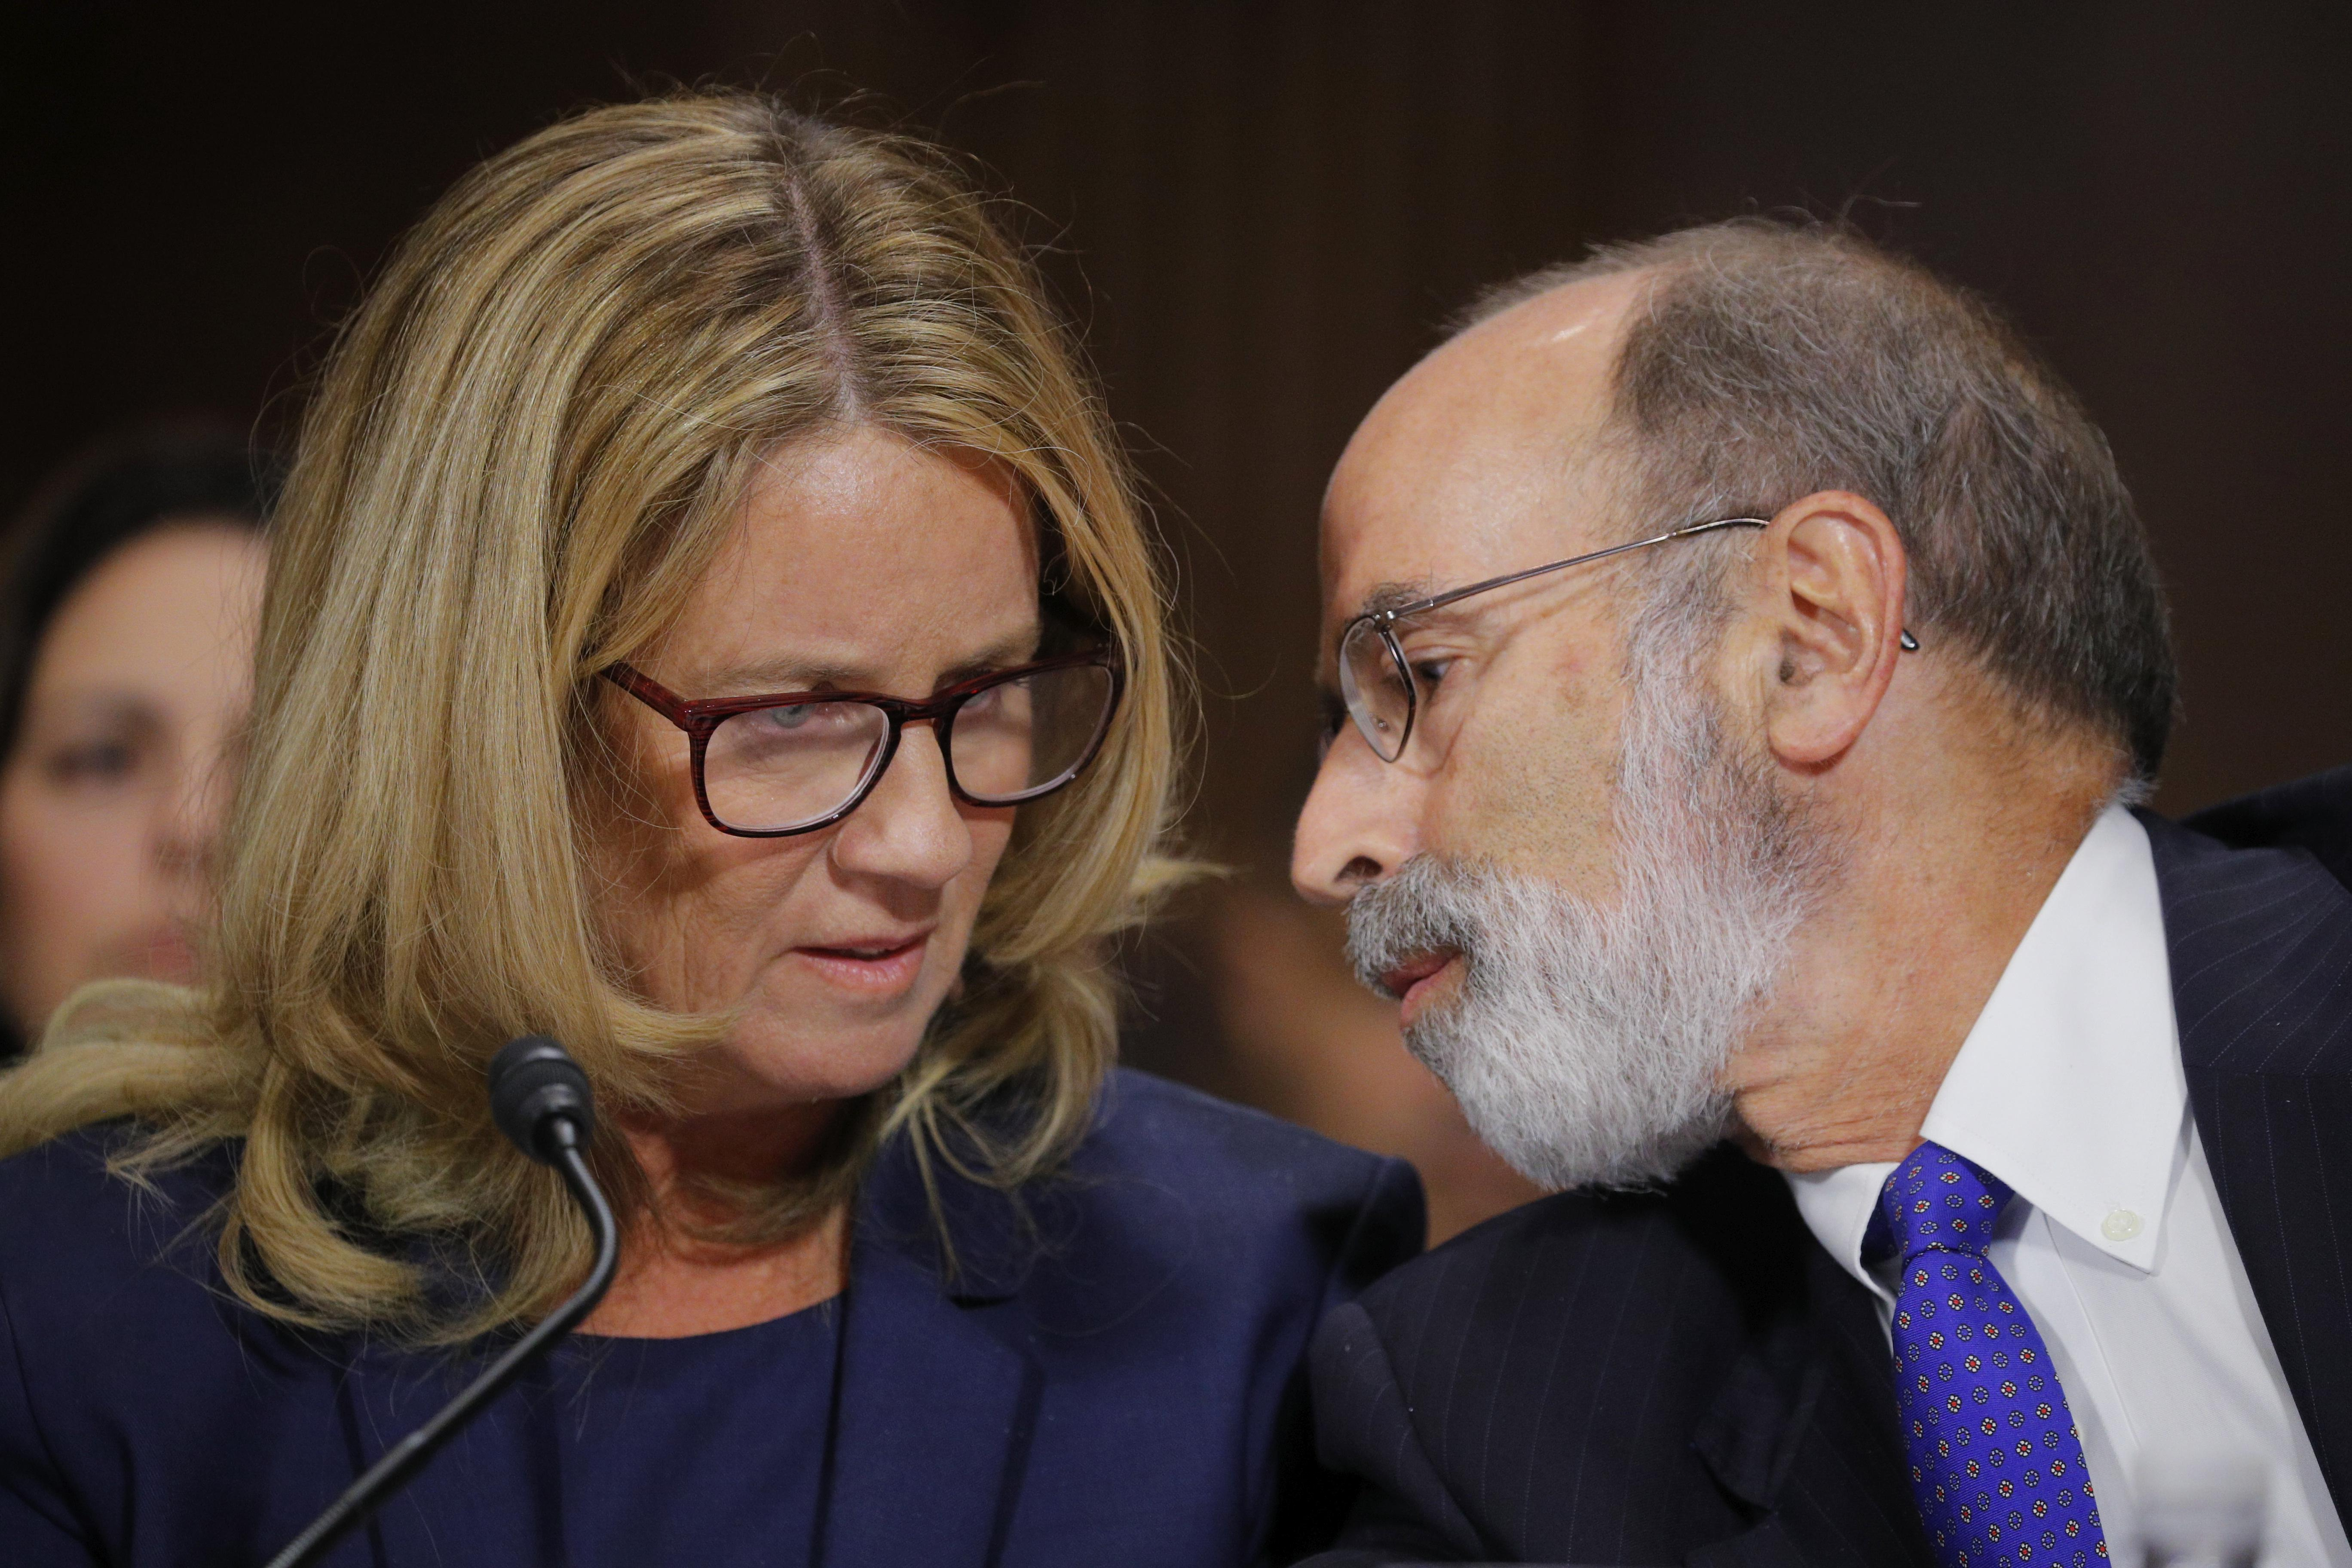 Christine Blasey Ford confers with Michael Bromwich at the hearing.